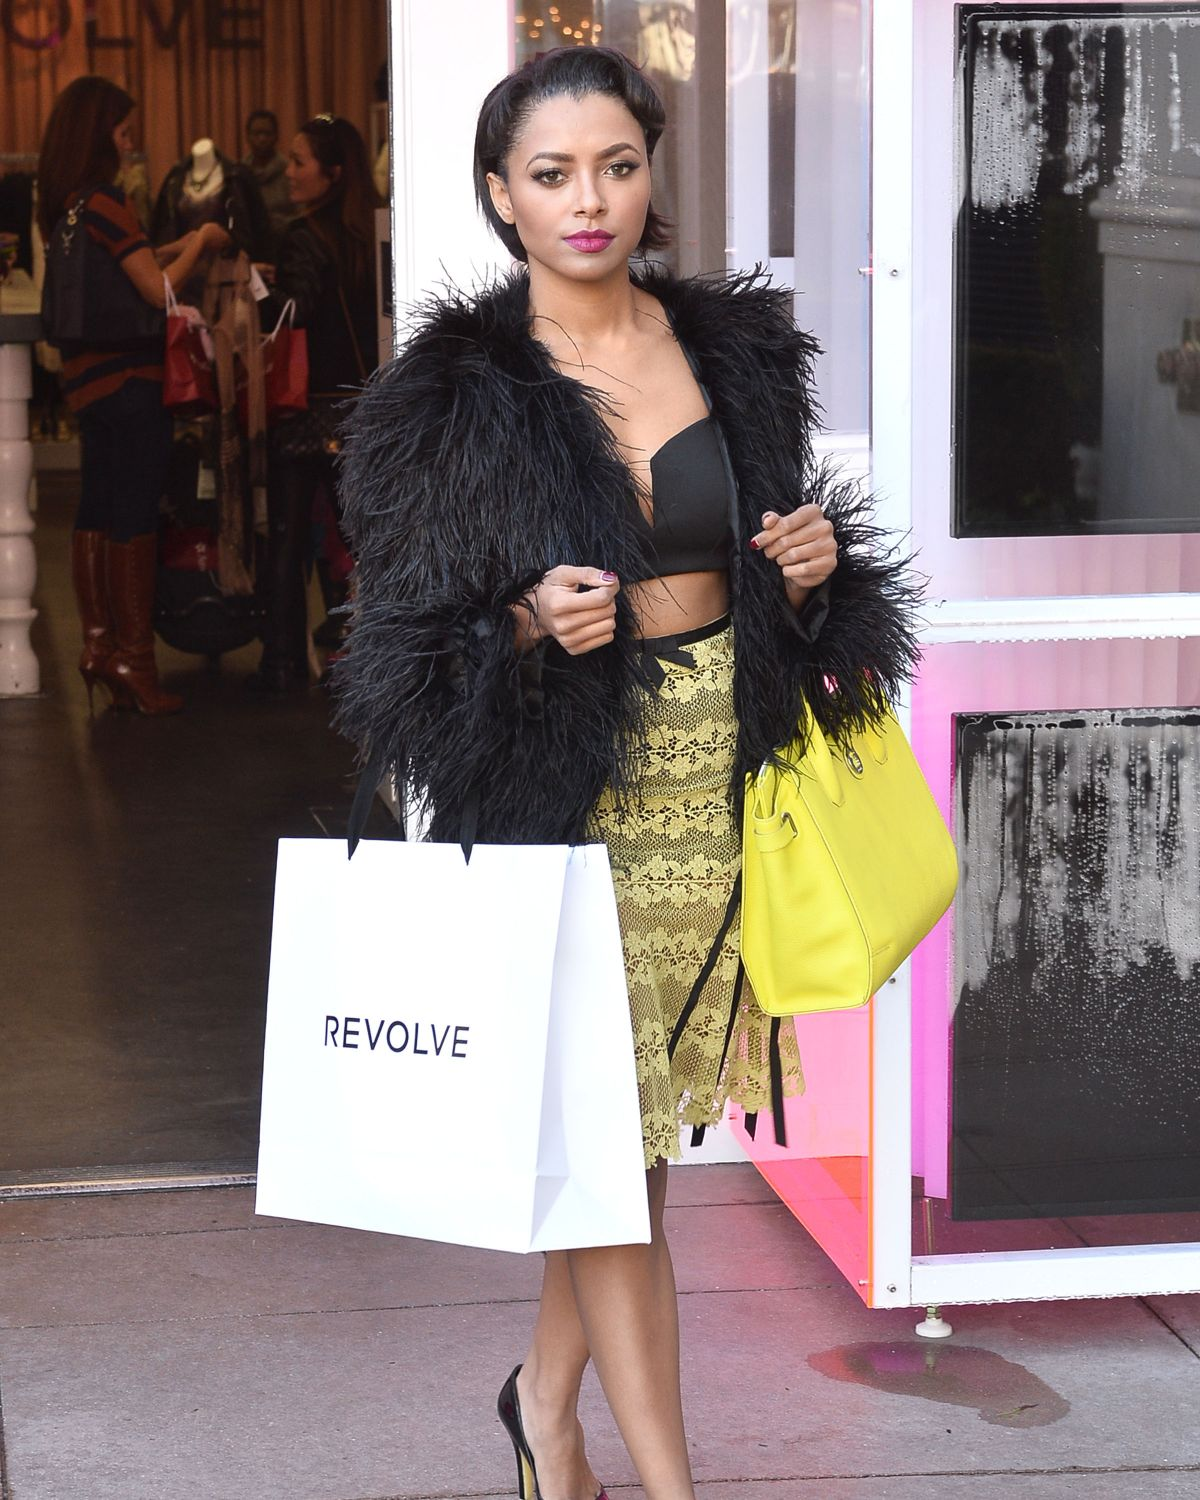 Revolve Boutiques: Kat Graham Shopping At The Revolve Popup Store